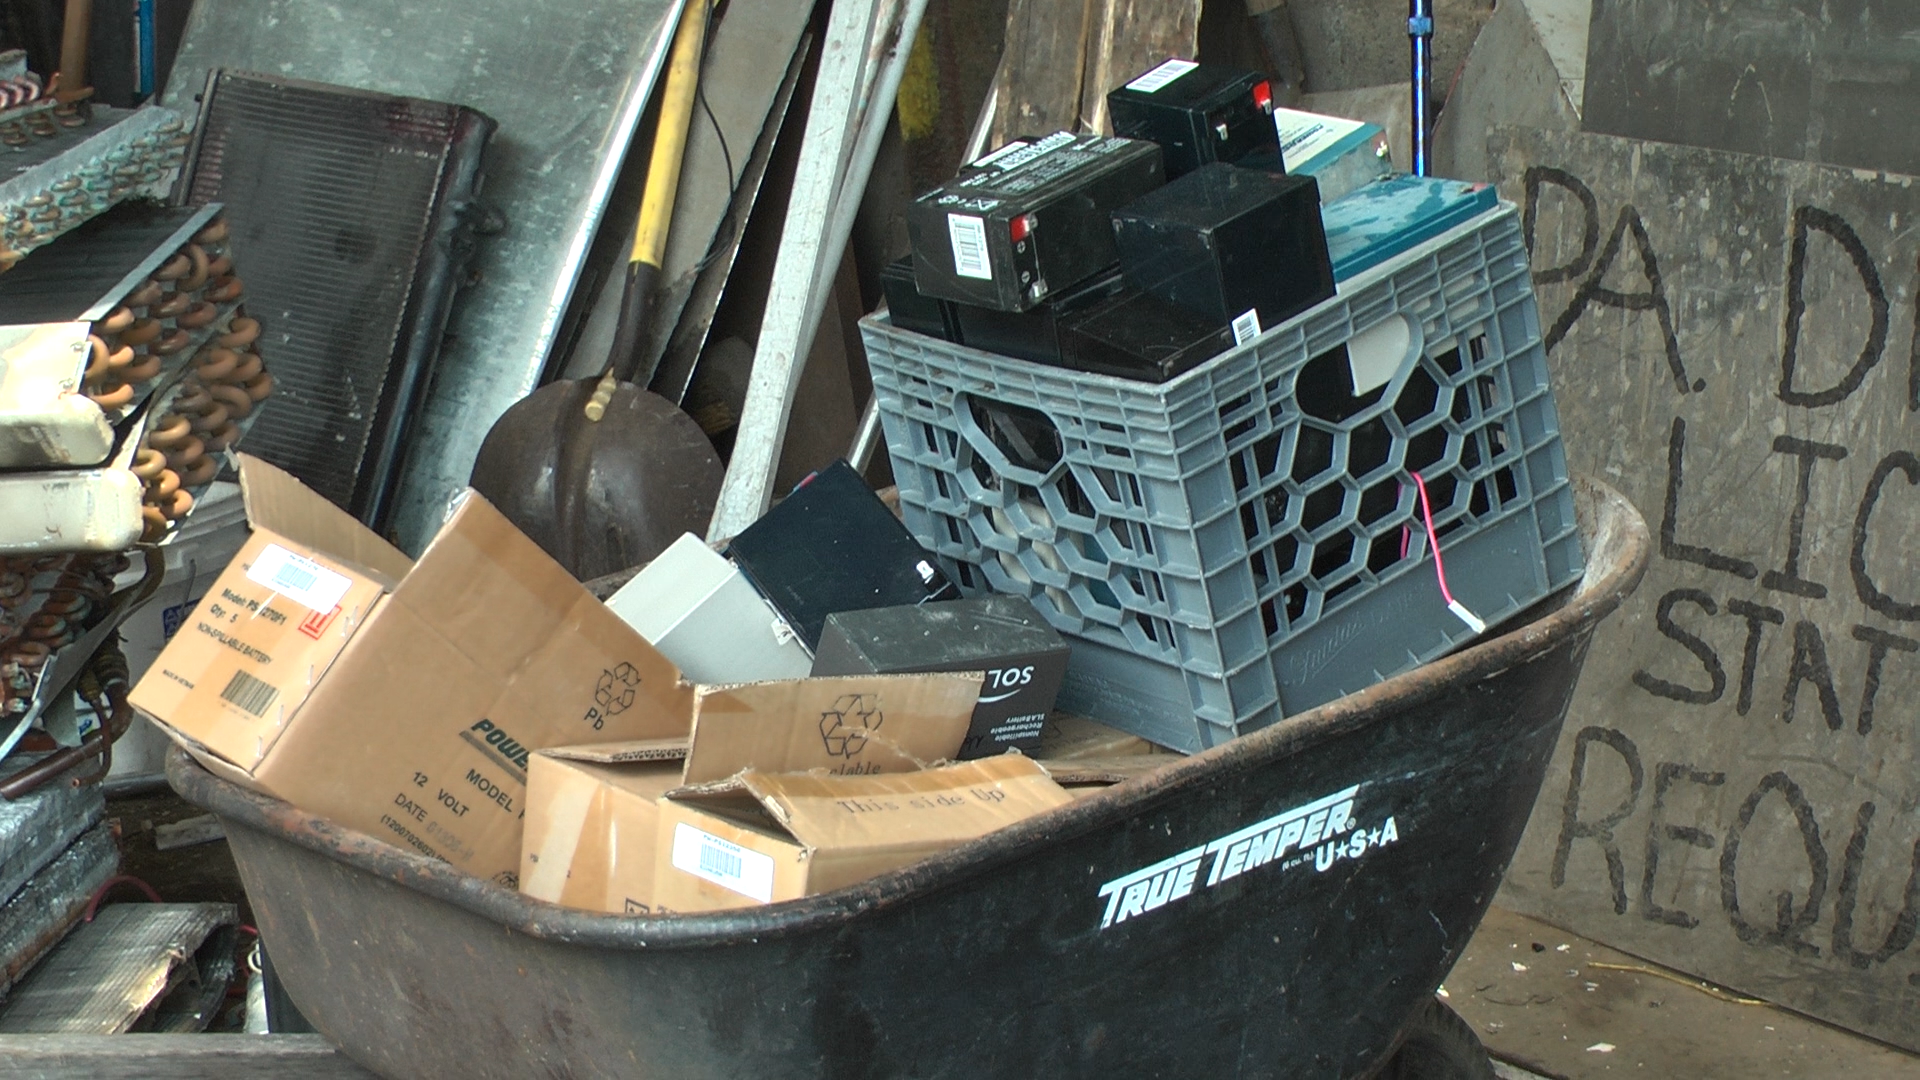 Used Car Batteries Near Me >> Cash to recycle Lead Batteries near me M. Dunn Recycling Center Scrap Metal Northeast ...